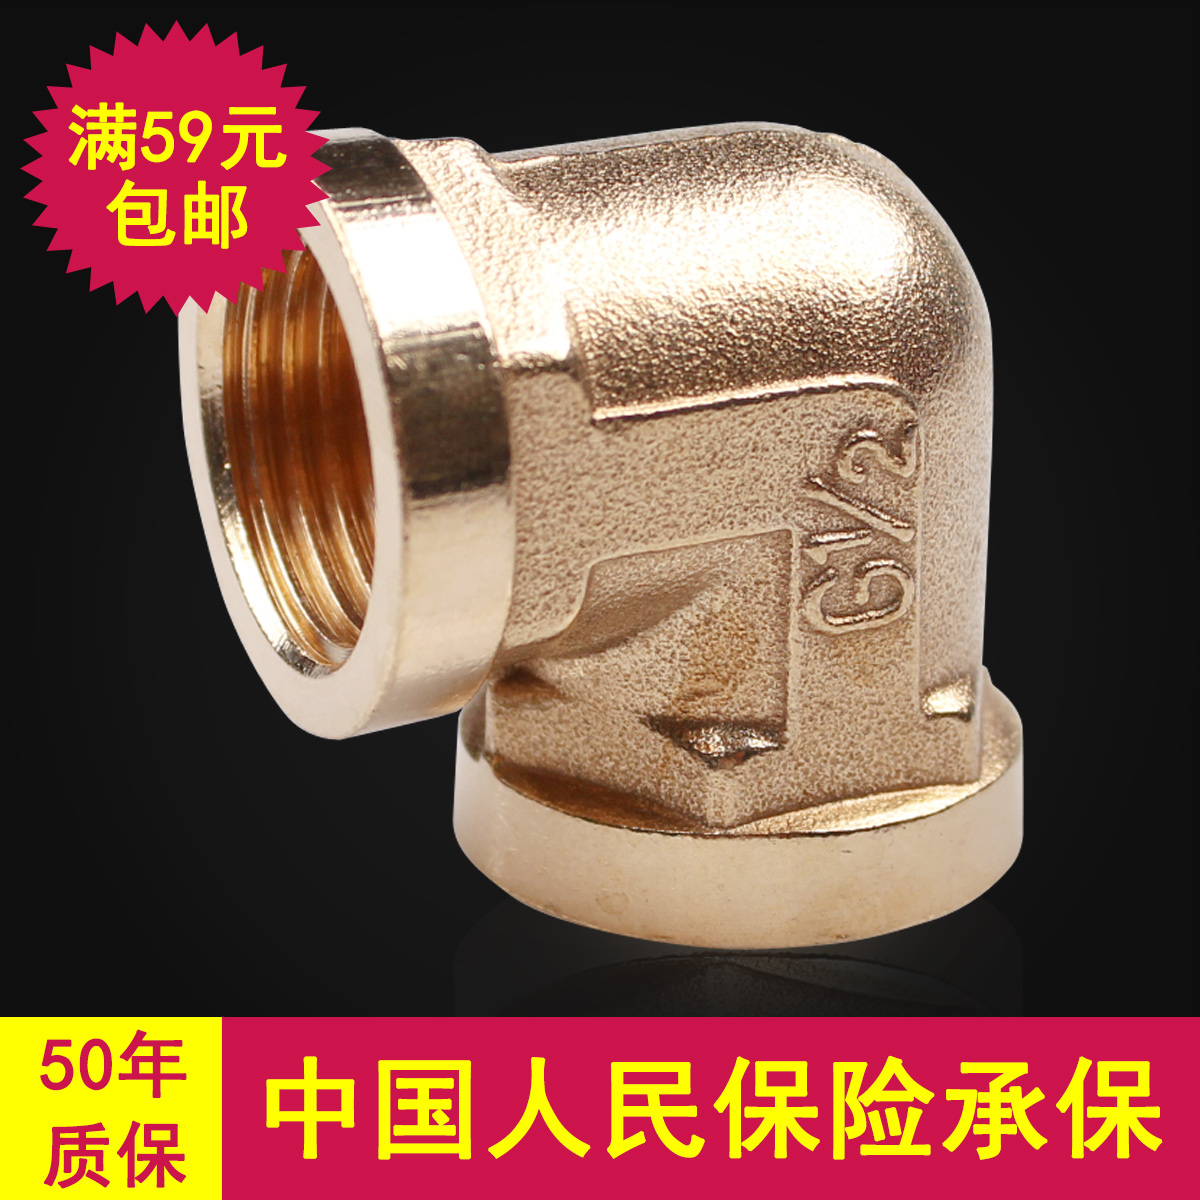 Hdrf copper fittings 4 since the beginning of copper wire elbow elbow thick copper fittings copper plumbing pipe fittings